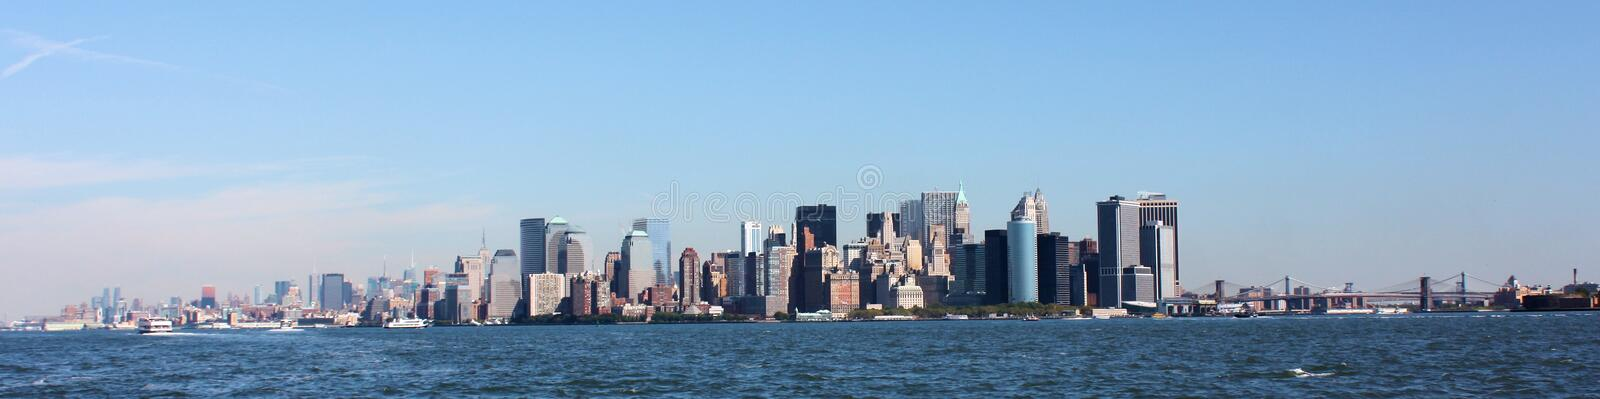 Panorama di New York City fotografia stock